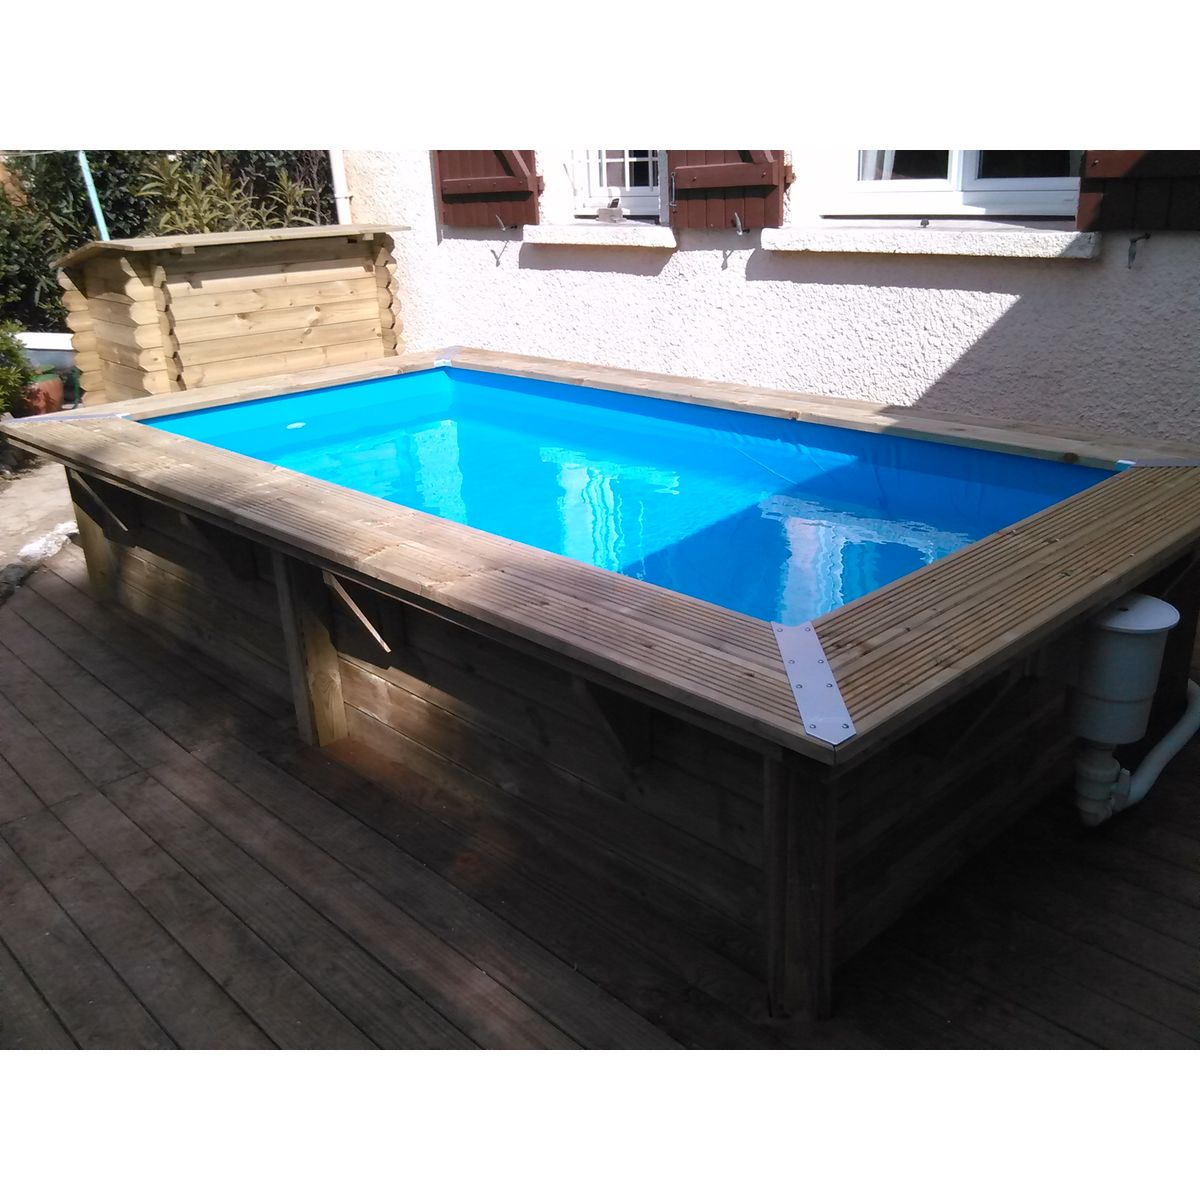 Piscine bois topiwall for Piscine autoportee bois rectangulaire